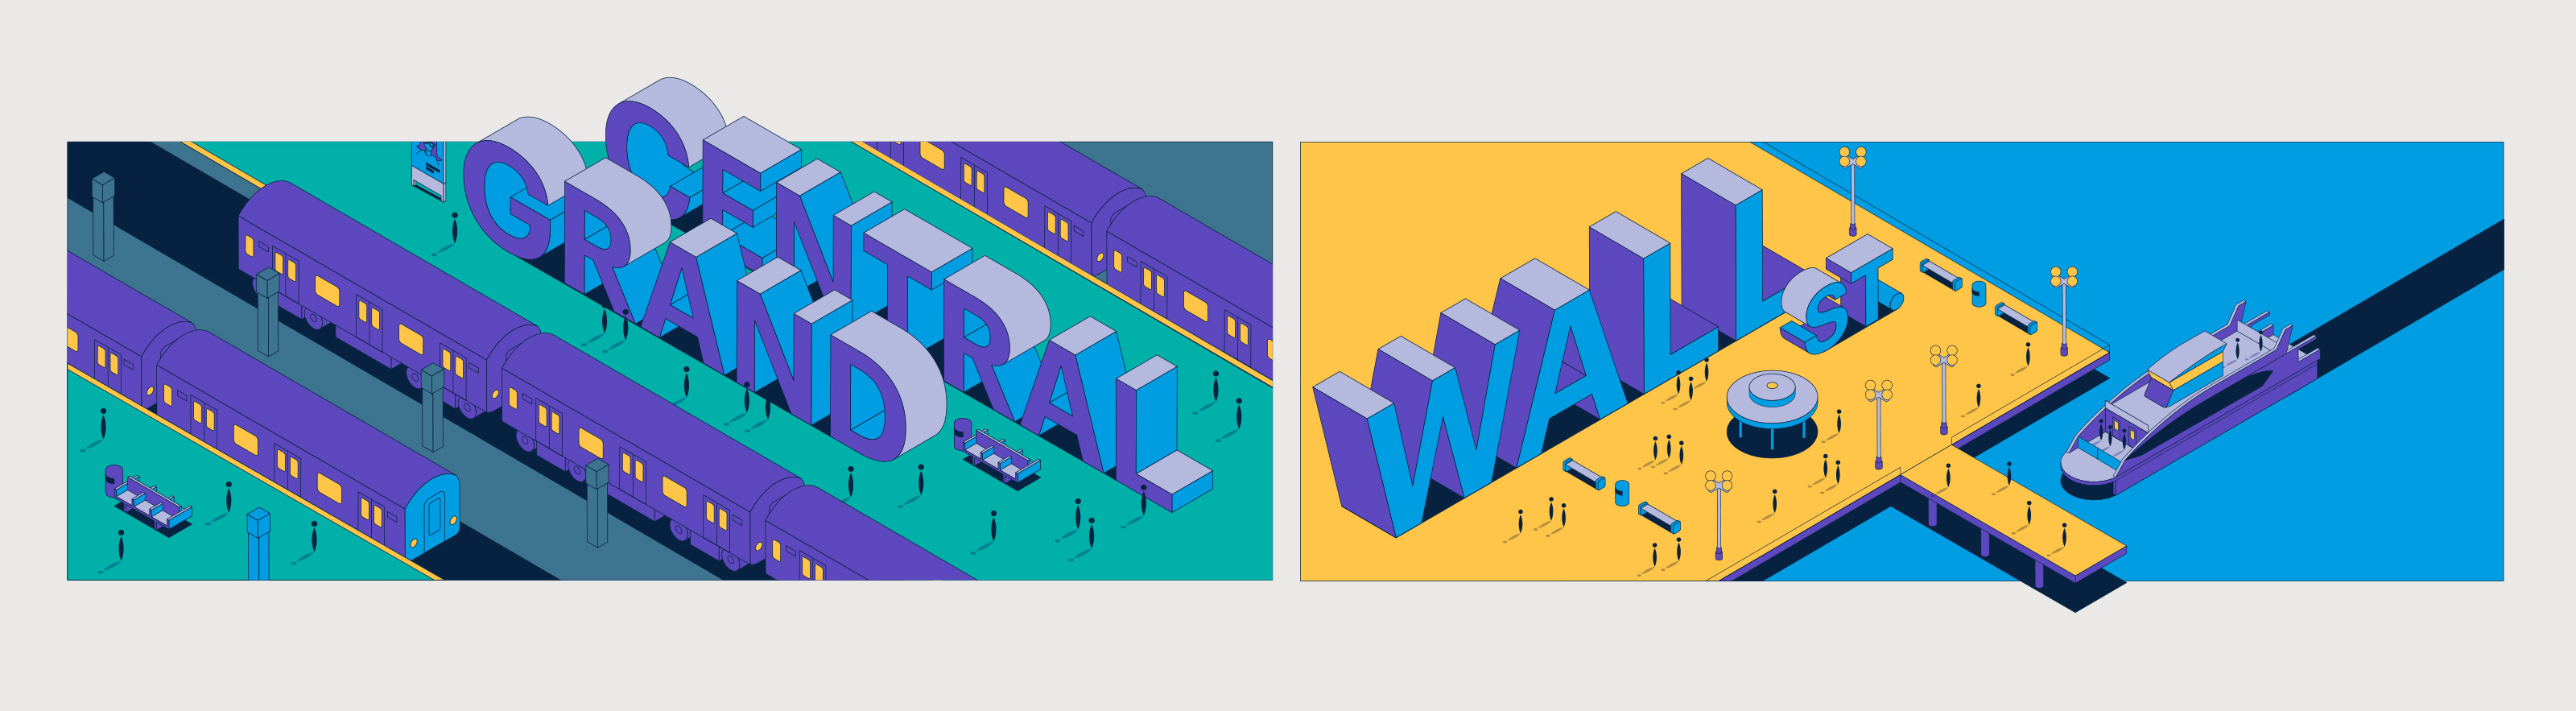 United Airlines Grand Central and Wall Street illustration